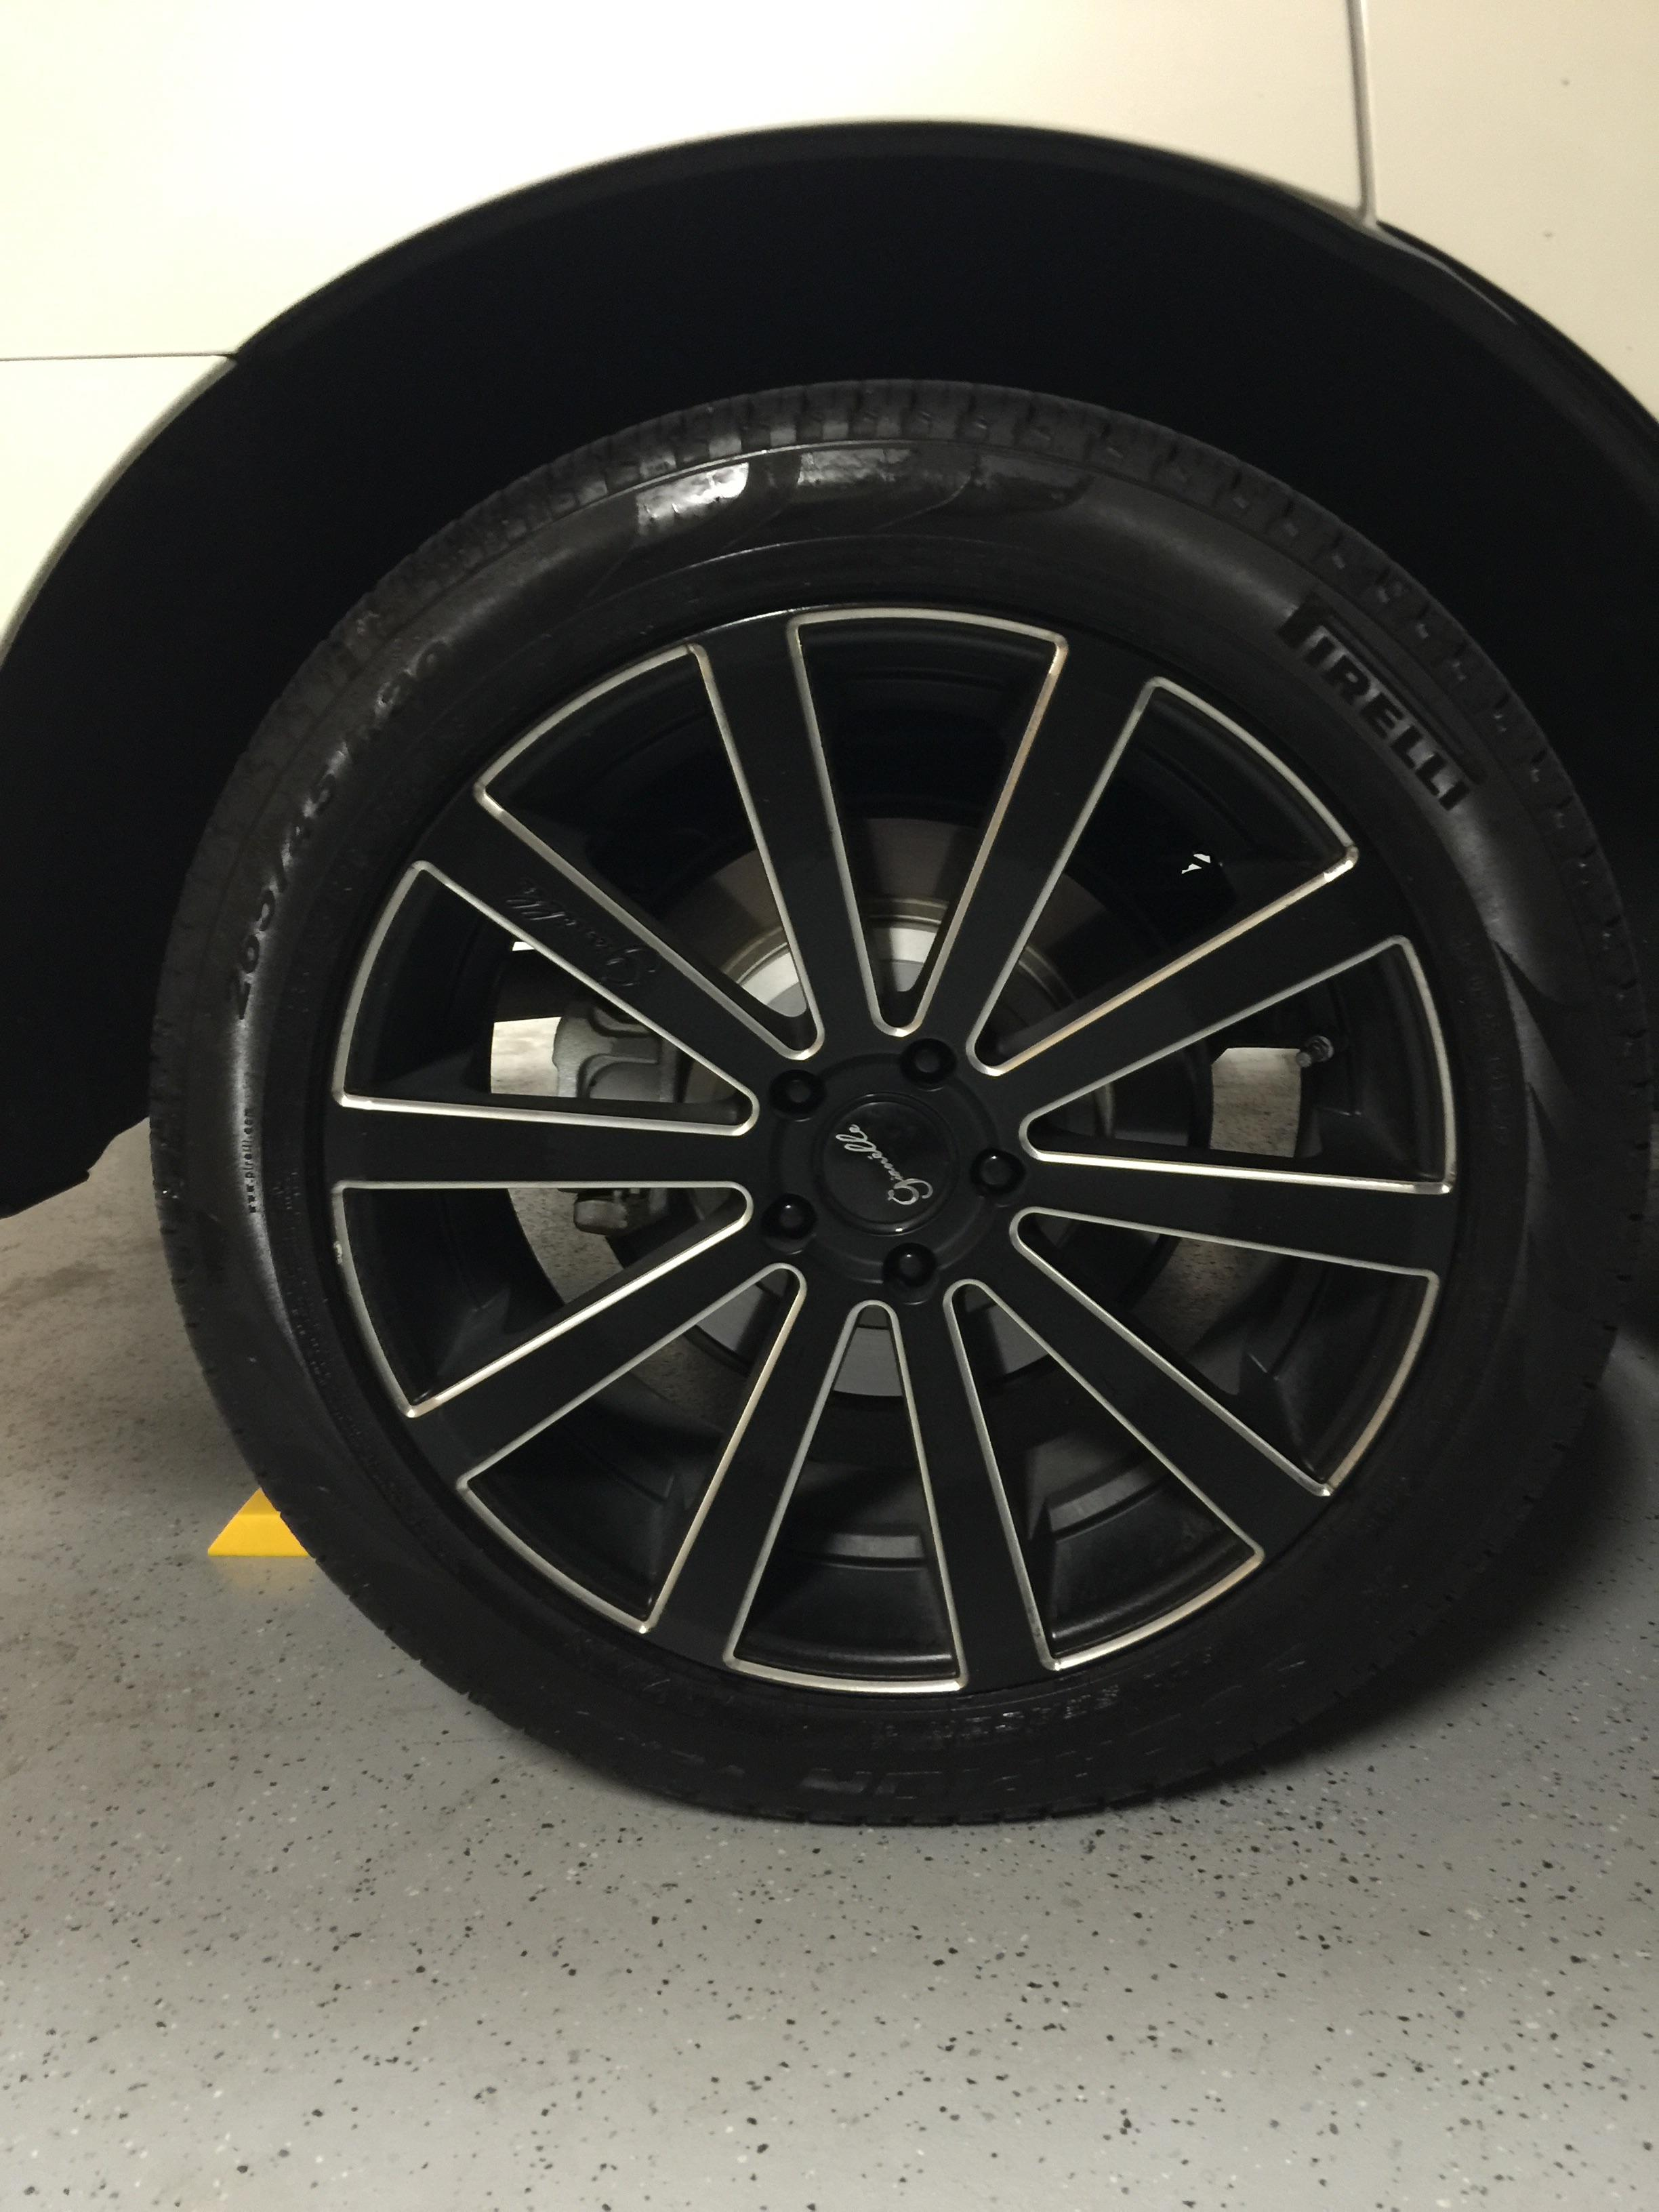 PILATION THREAD 3G Wheels and Tires Acura MDX Forum Acura